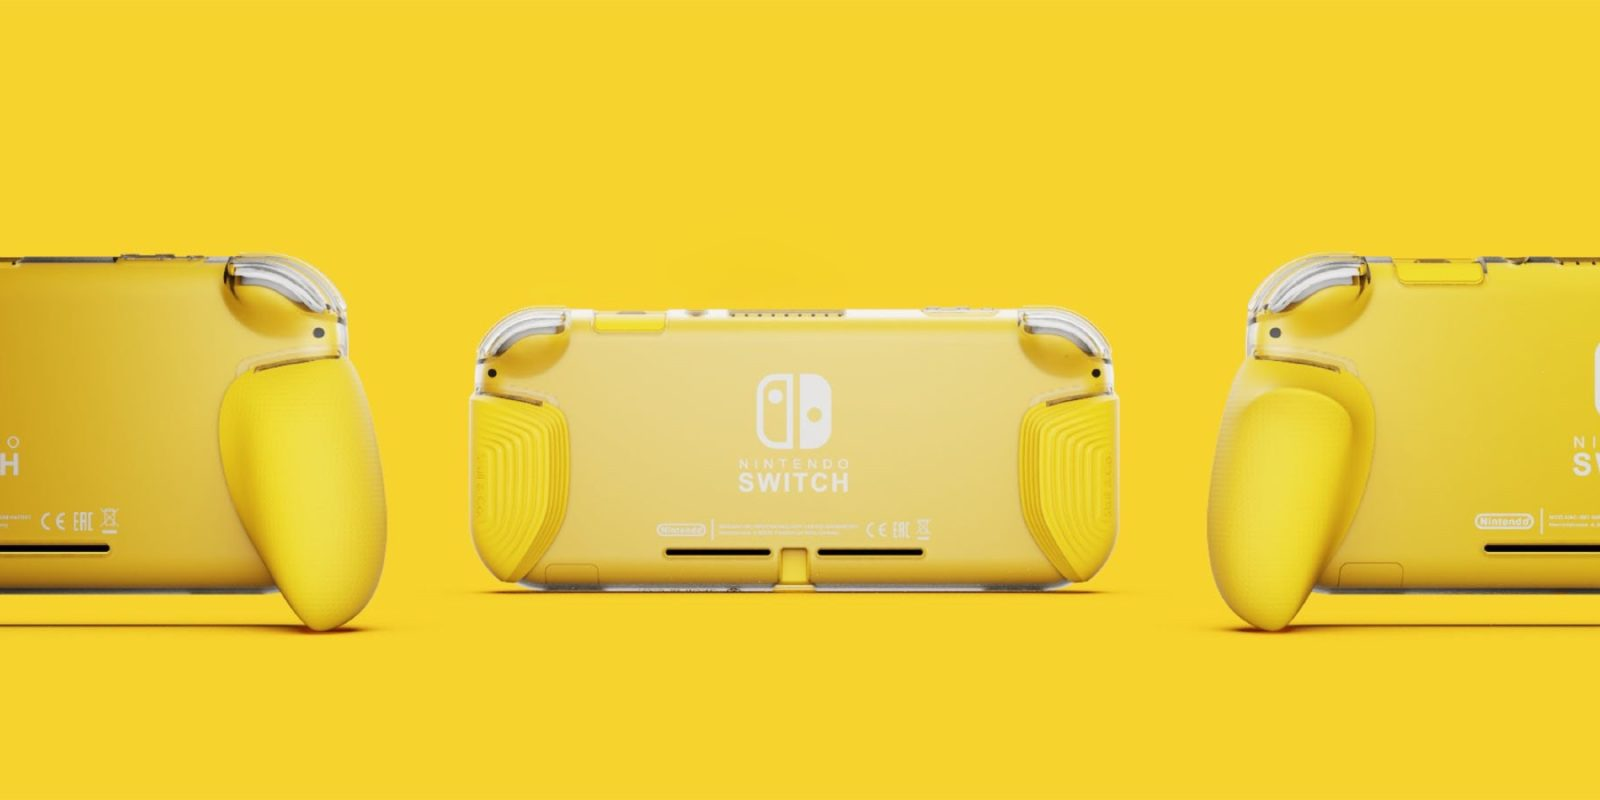 Skull and Co. teases new ergonomic GripCase ahead of Switch Lite launch